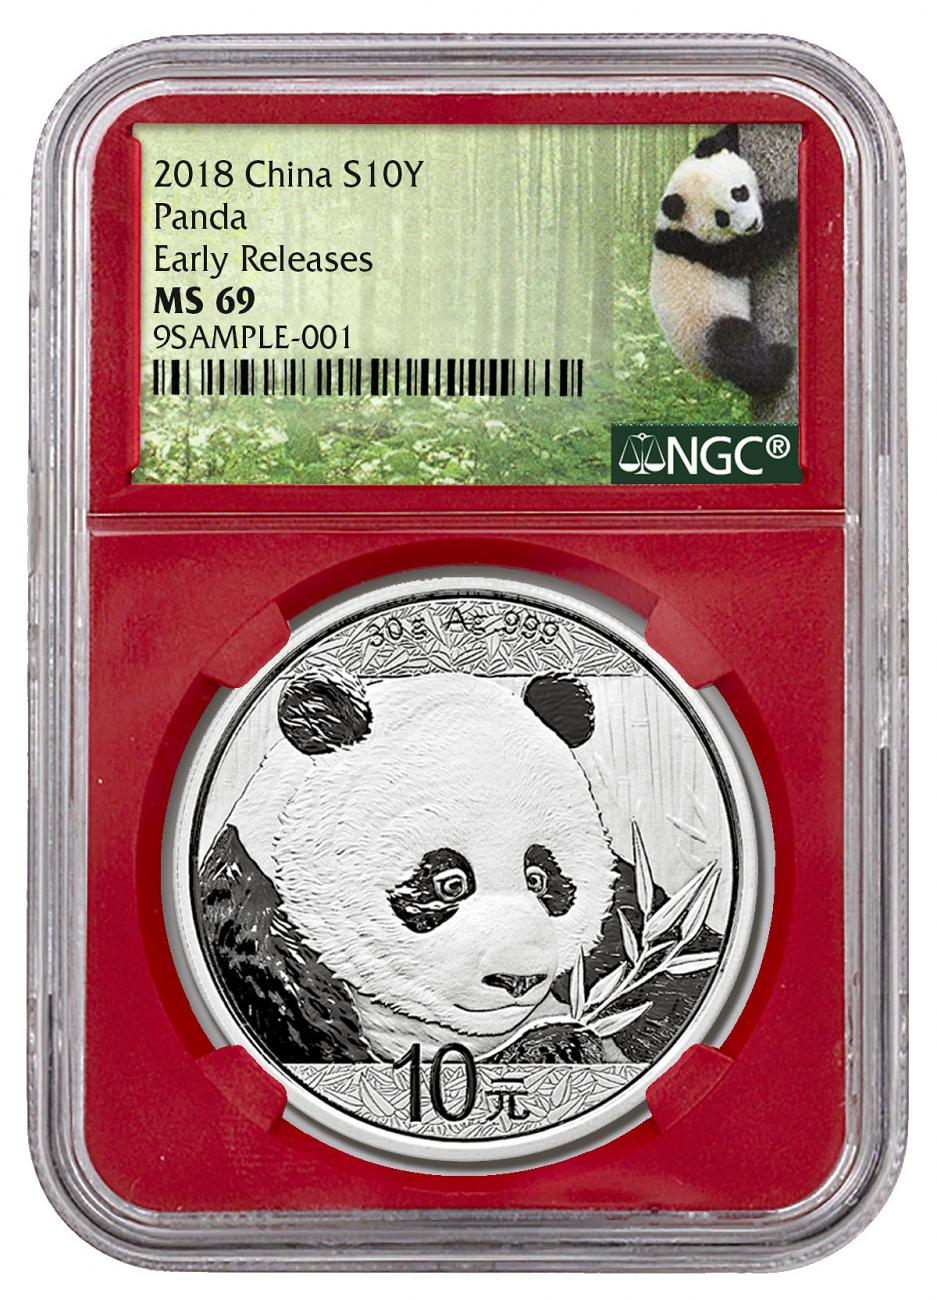 2018 China 30 g Silver Panda - 35th Anniversary ¥10 Coin NGC MS69 ER Red Core Holder Exclusive Panda Label